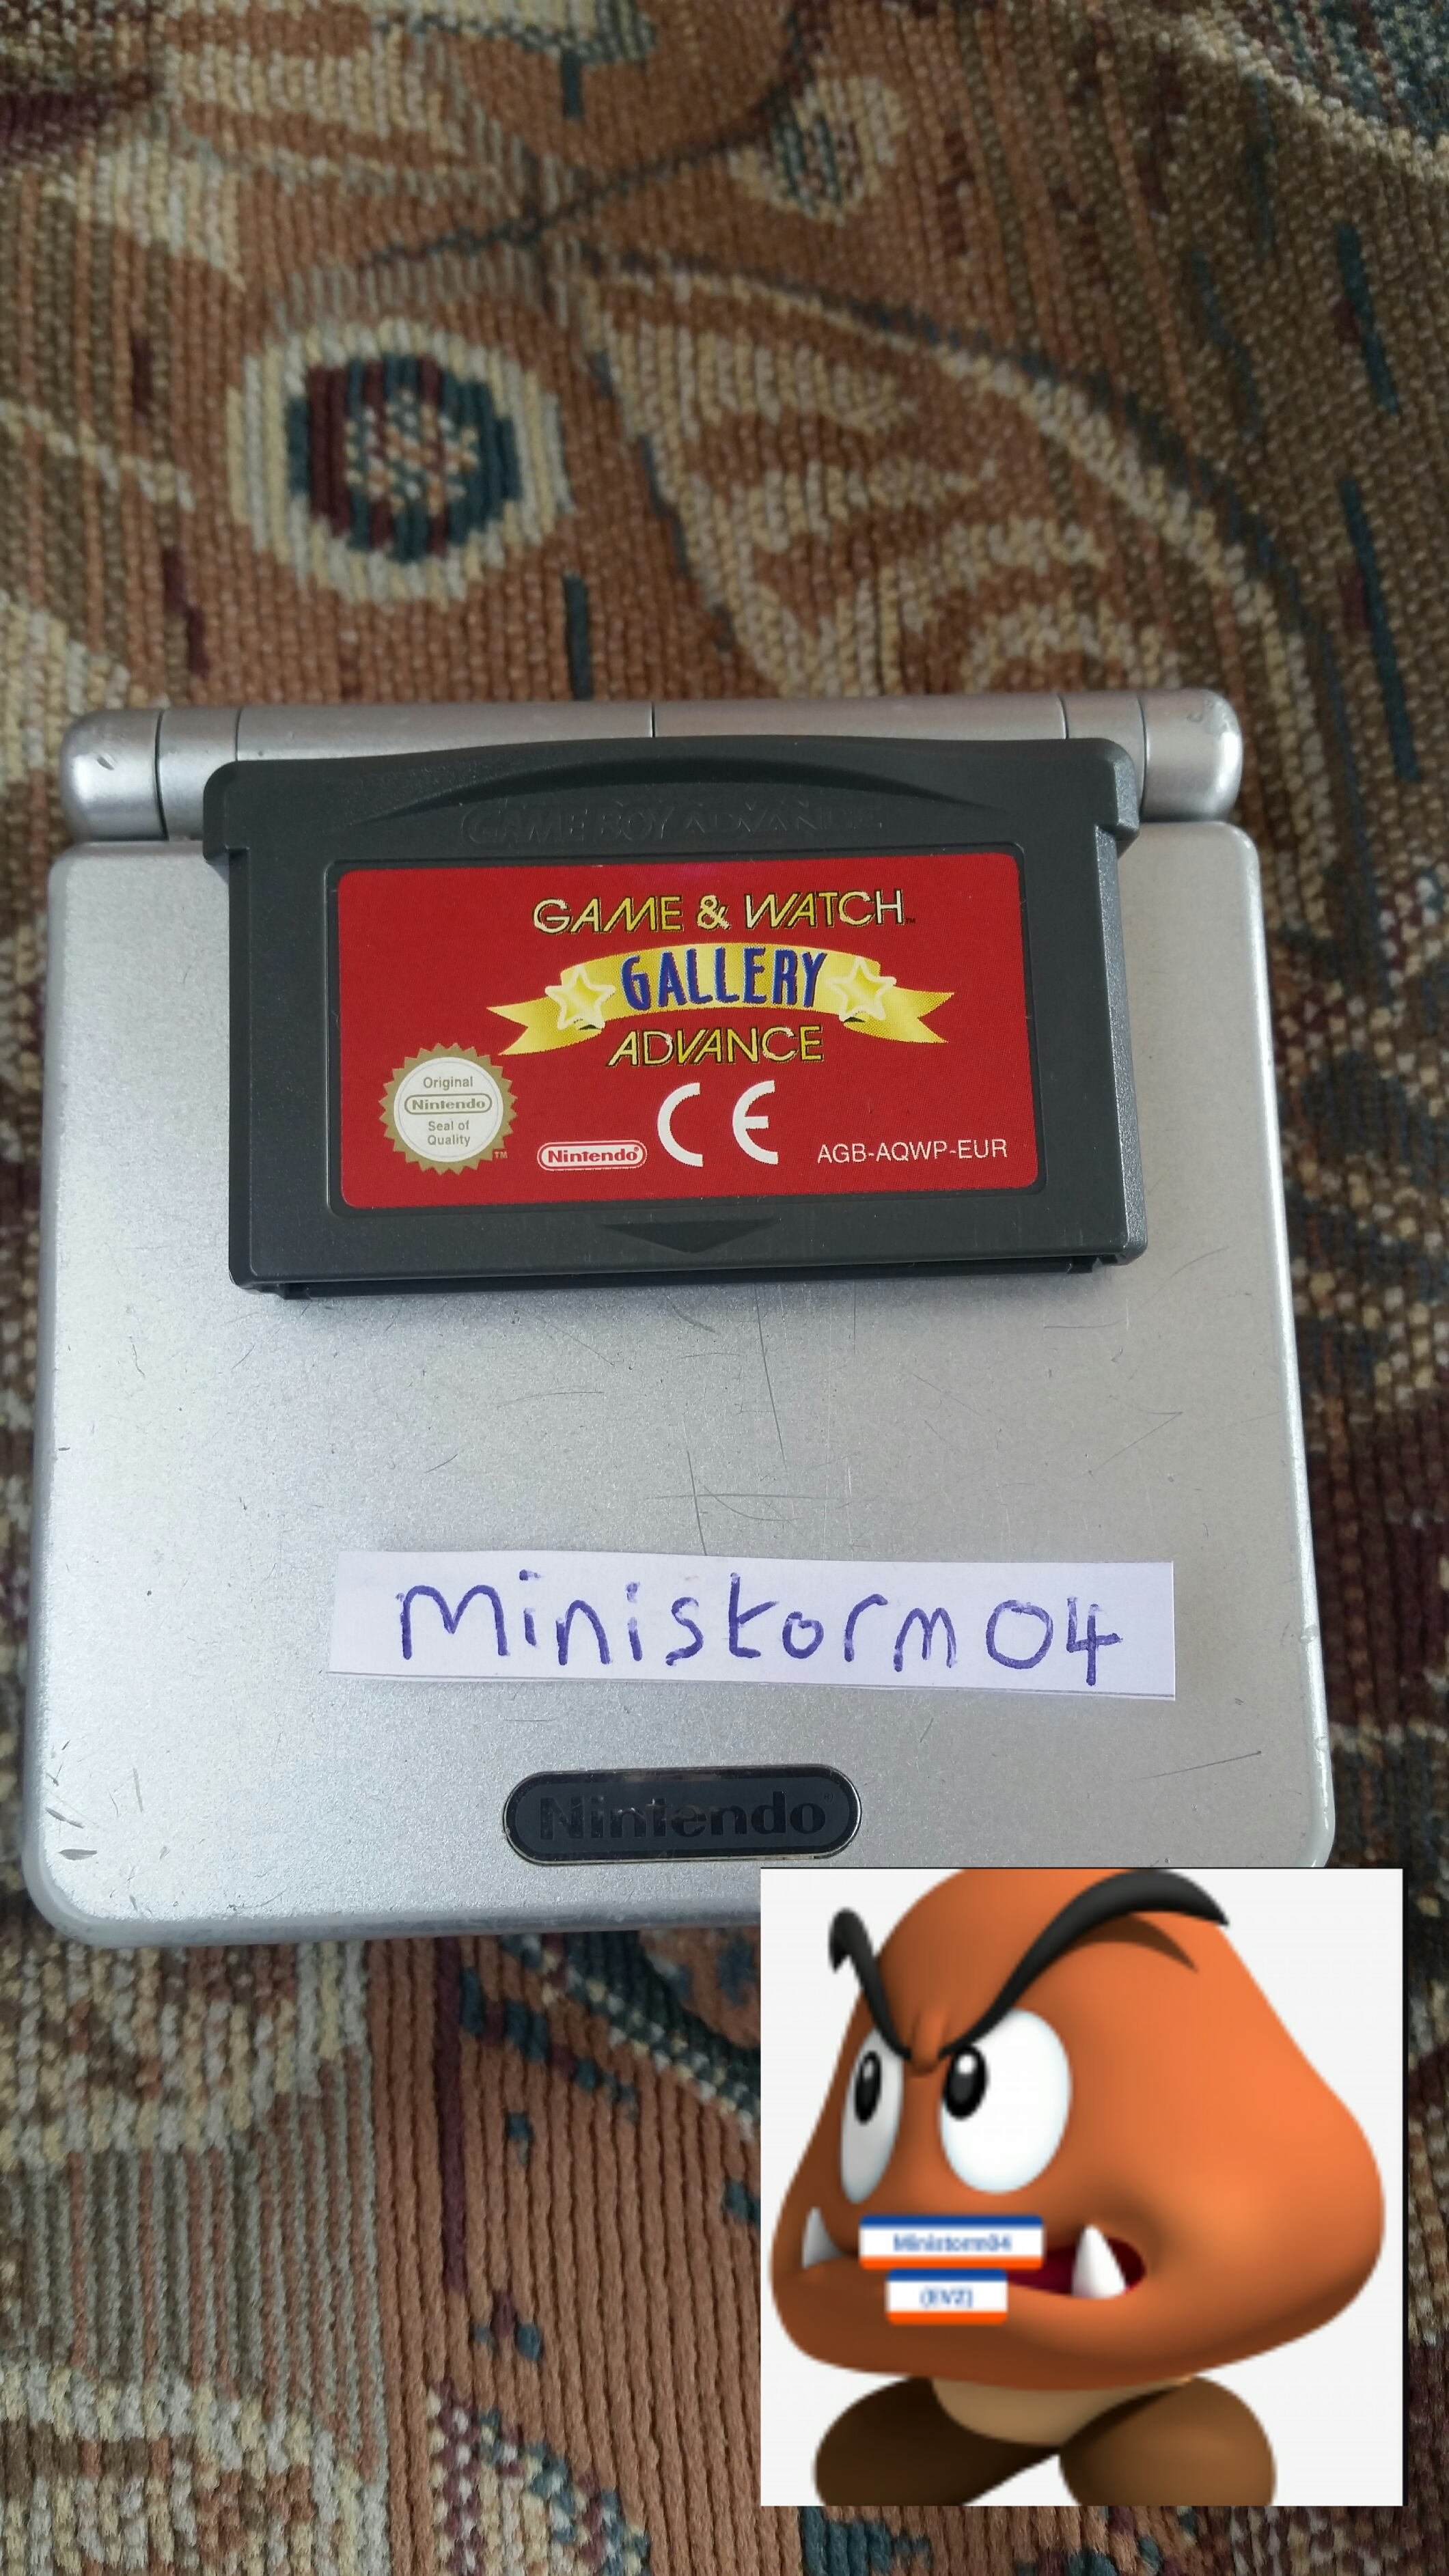 ministorm04: Game & Watch Gallery 4: Fire [Modern: Hard] (GBA) 72 points on 2019-05-27 09:28:56